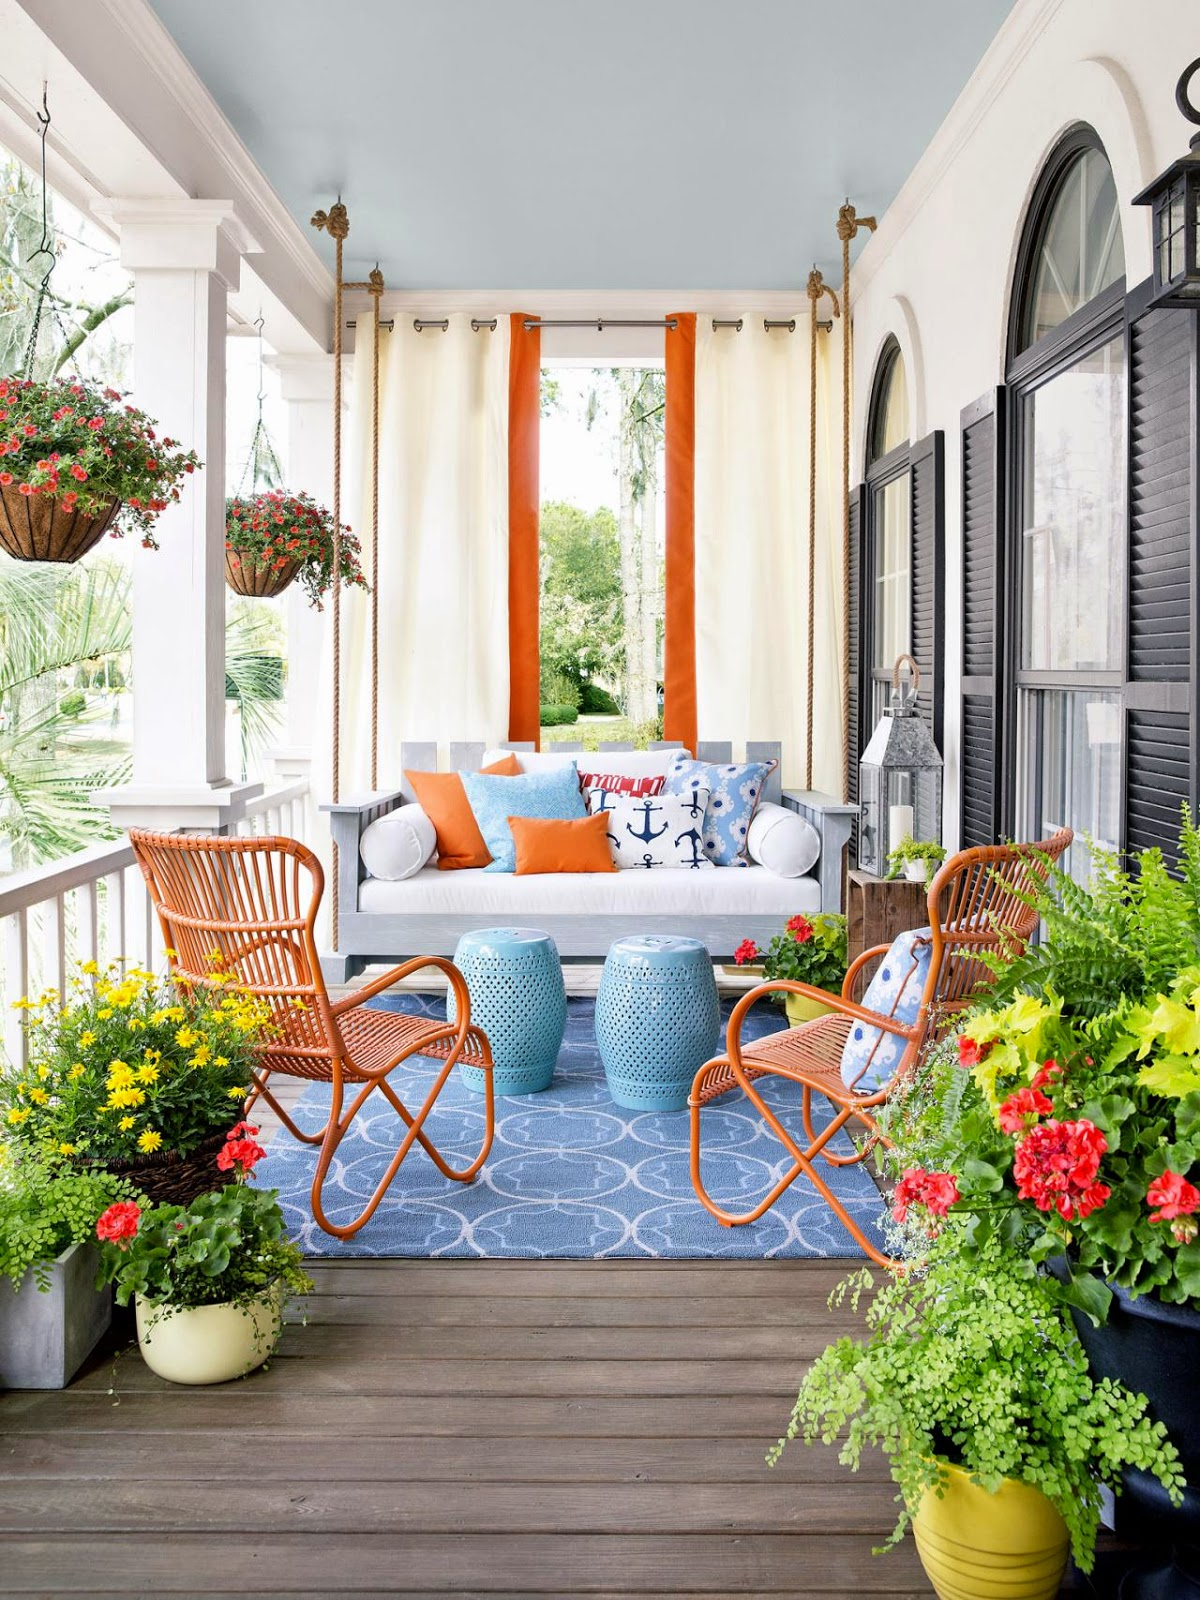 30 Best Porch Decoration Ideas and Designs for 2021